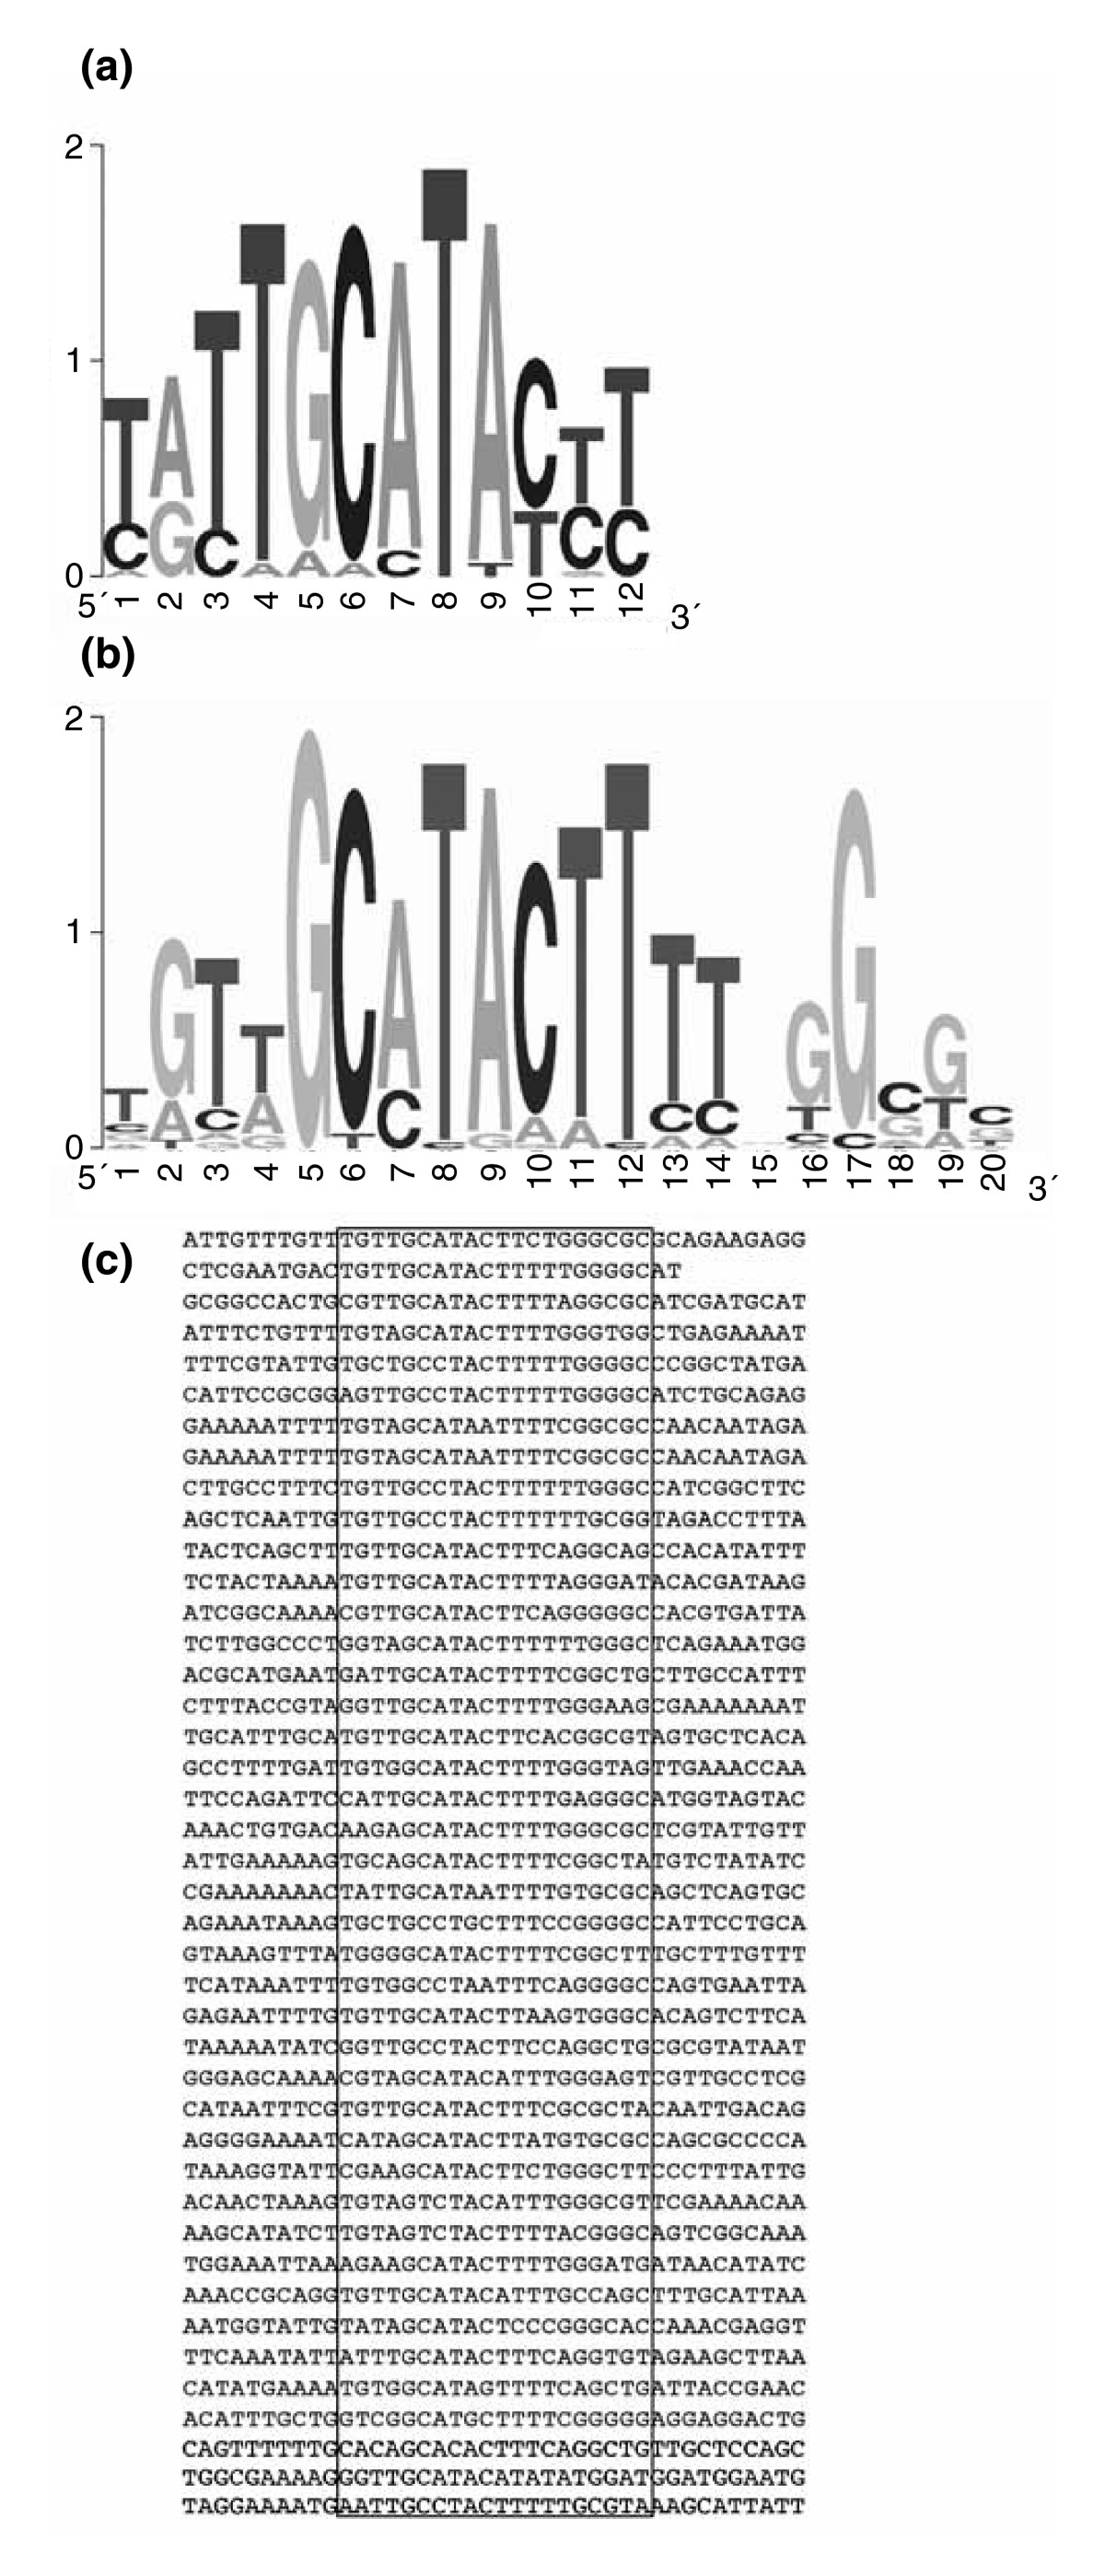 https://static-content.springer.com/image/art%3A10.1186%2Fgb-2007-8-8-r167/MediaObjects/13059_2007_Article_1648_Fig3_HTML.jpg